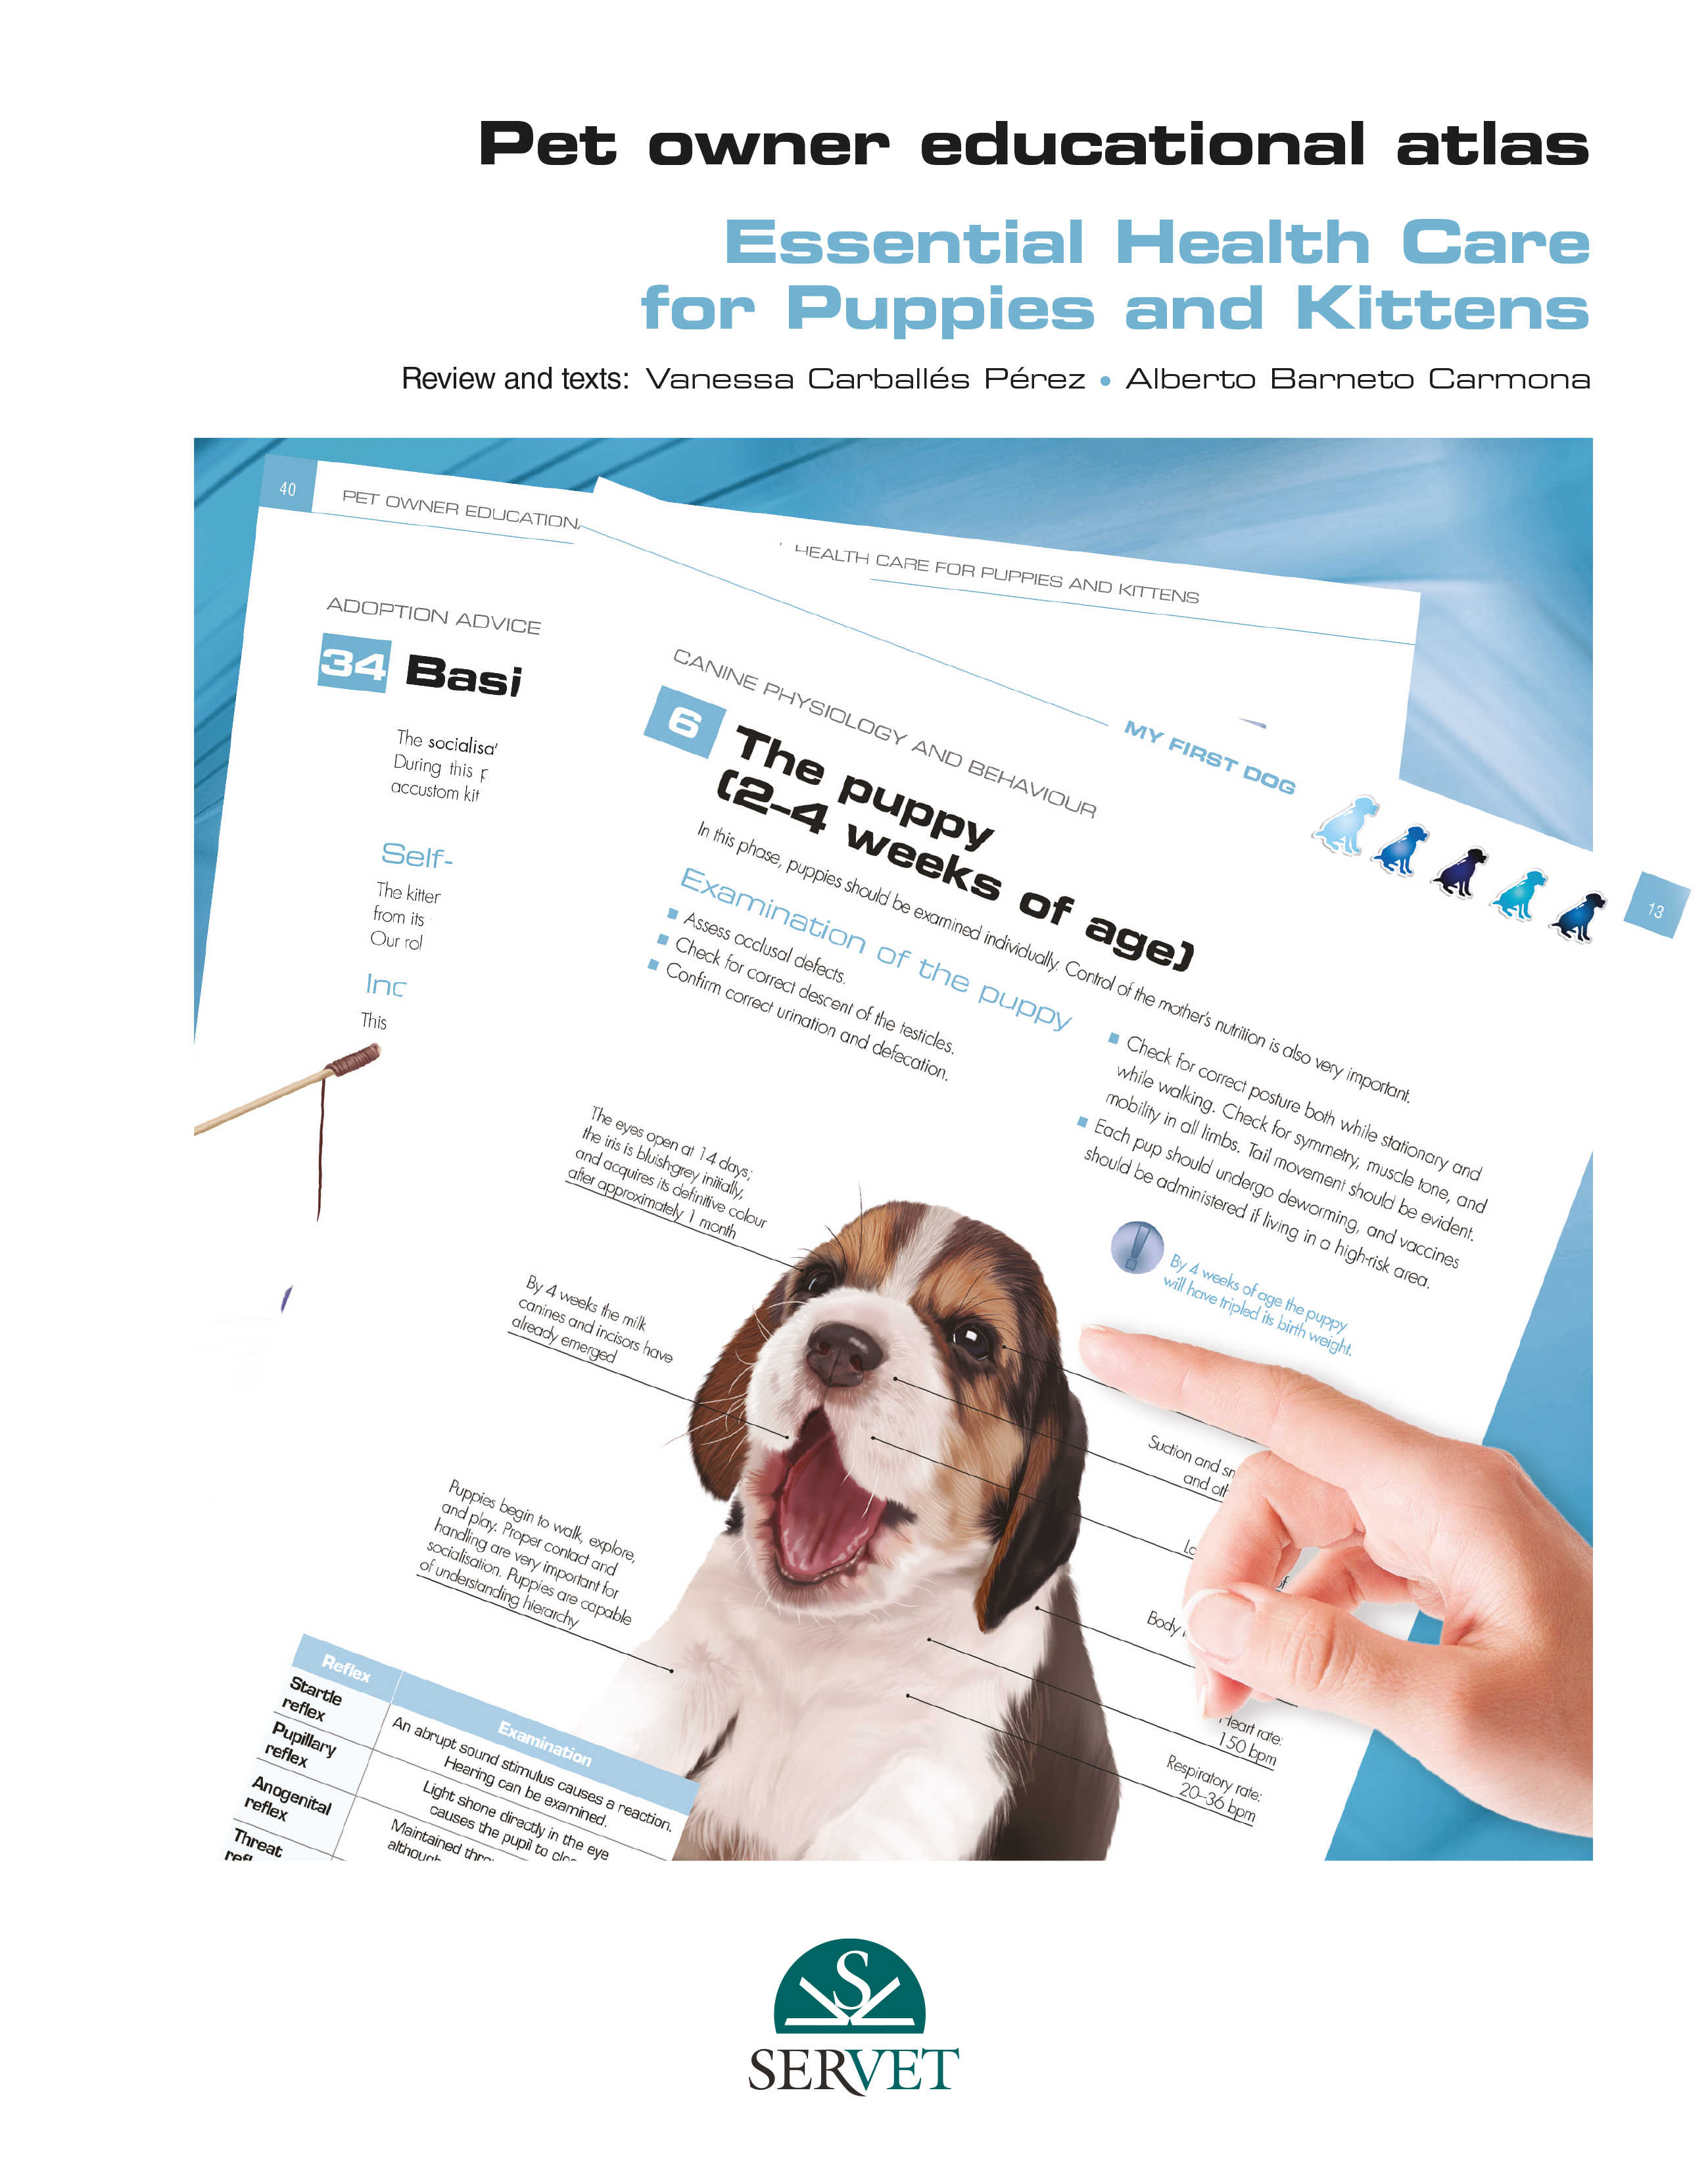 Pet Owner Educational Atlas. Basic Care for Puppies and Kittens